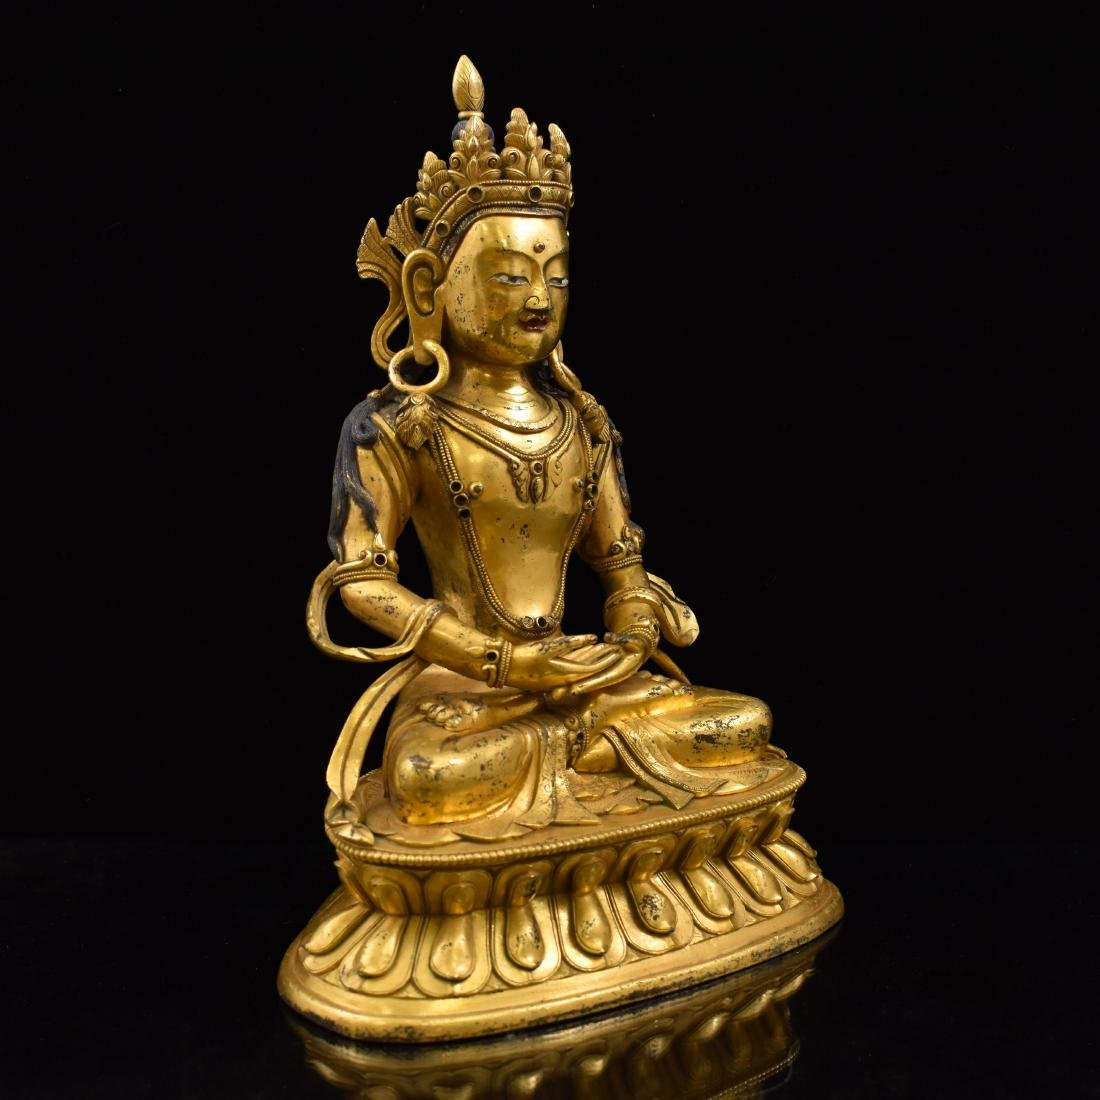 QING GILT BRONZE SEATED AMITAYUS BUDDHA - 2